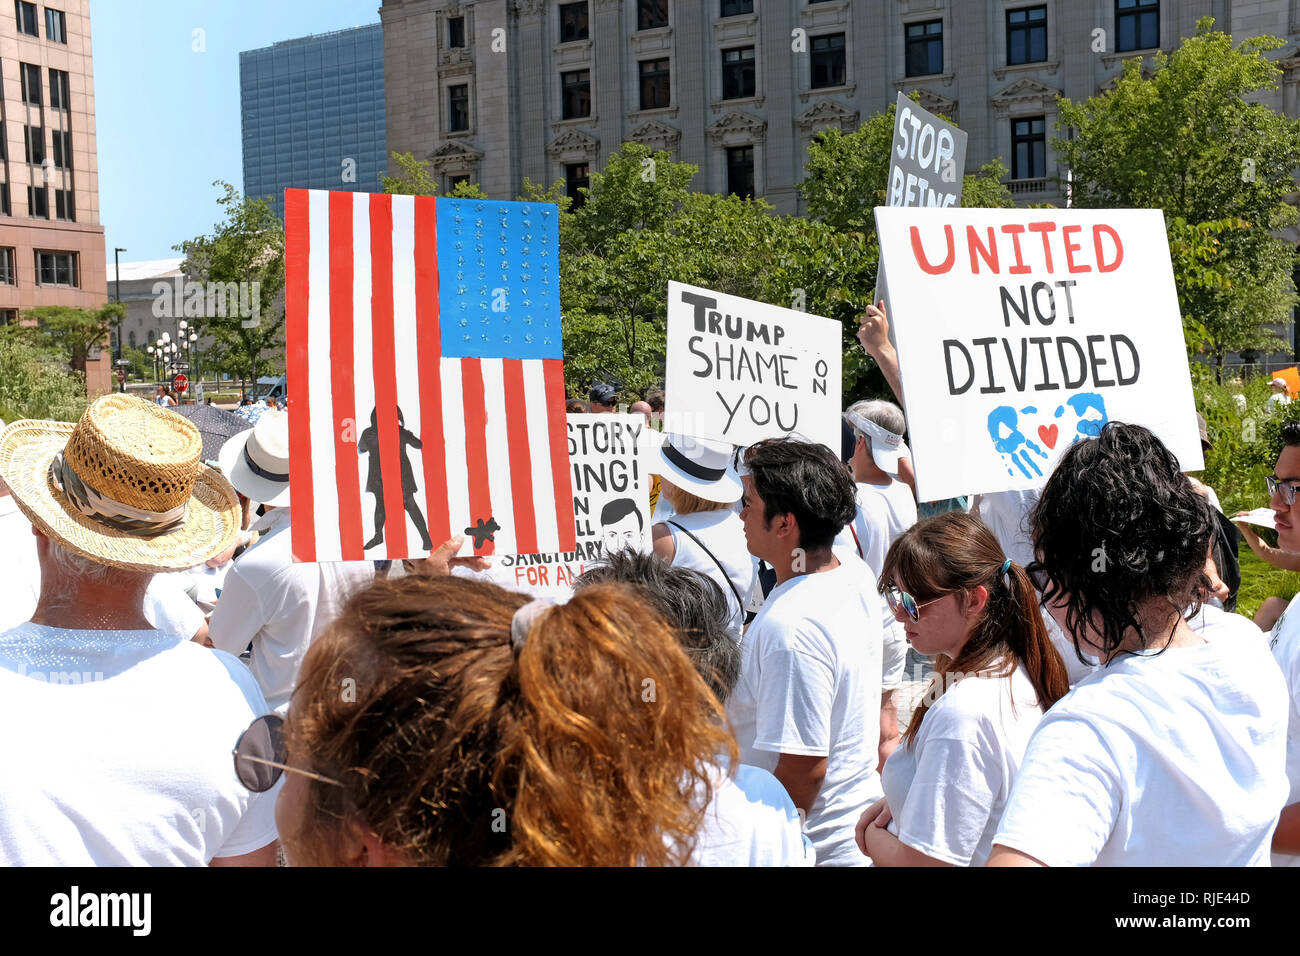 Public Square in downtown Cleveland, Ohio, USA is the site of a protest rally against the Trump Administration immigration policies. - Stock Image